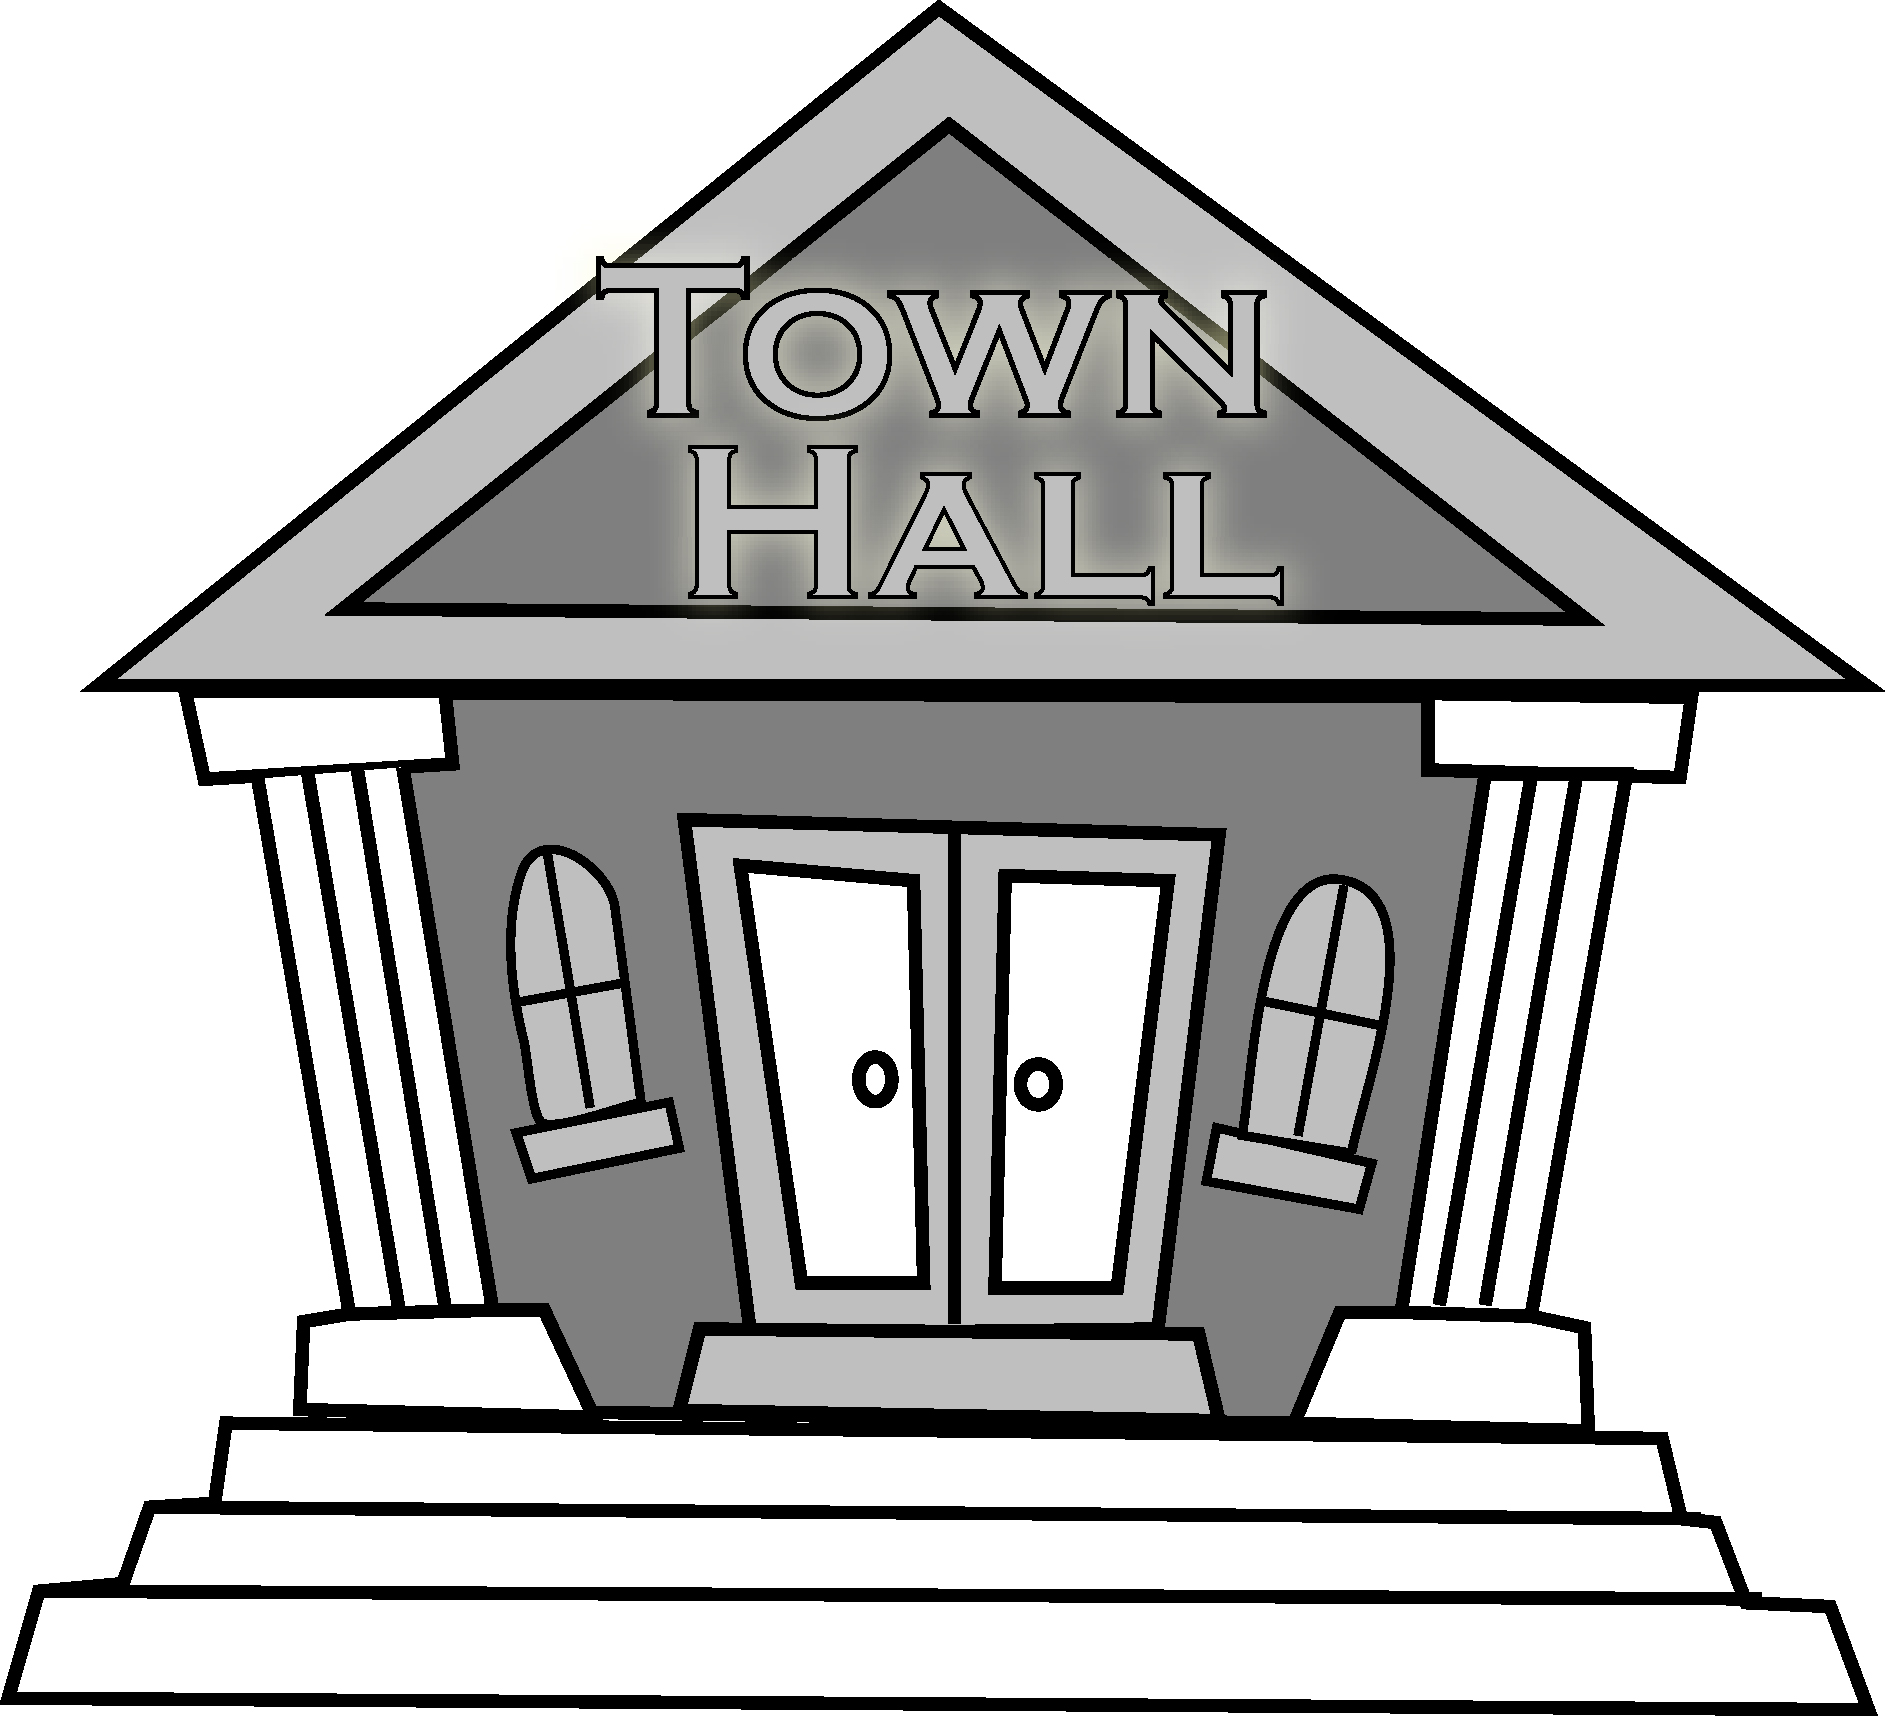 Place clipart municipal hall Shores – January Huron Hall